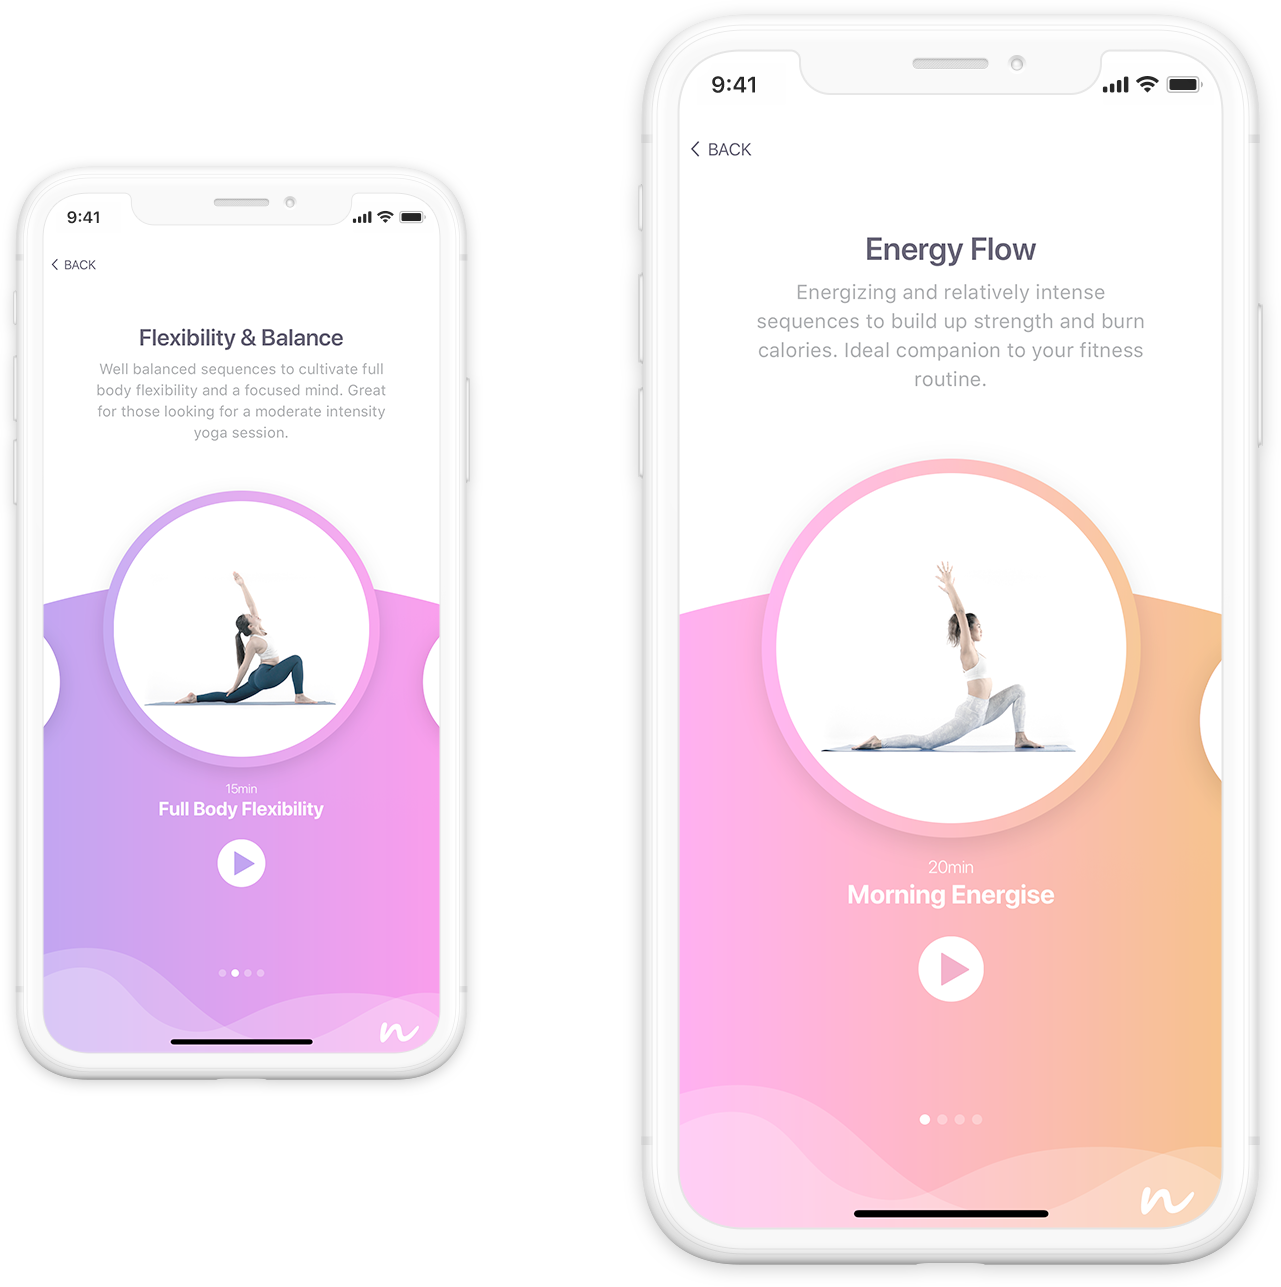 Yoga Nexus app screen shots for energize and flexibility sections